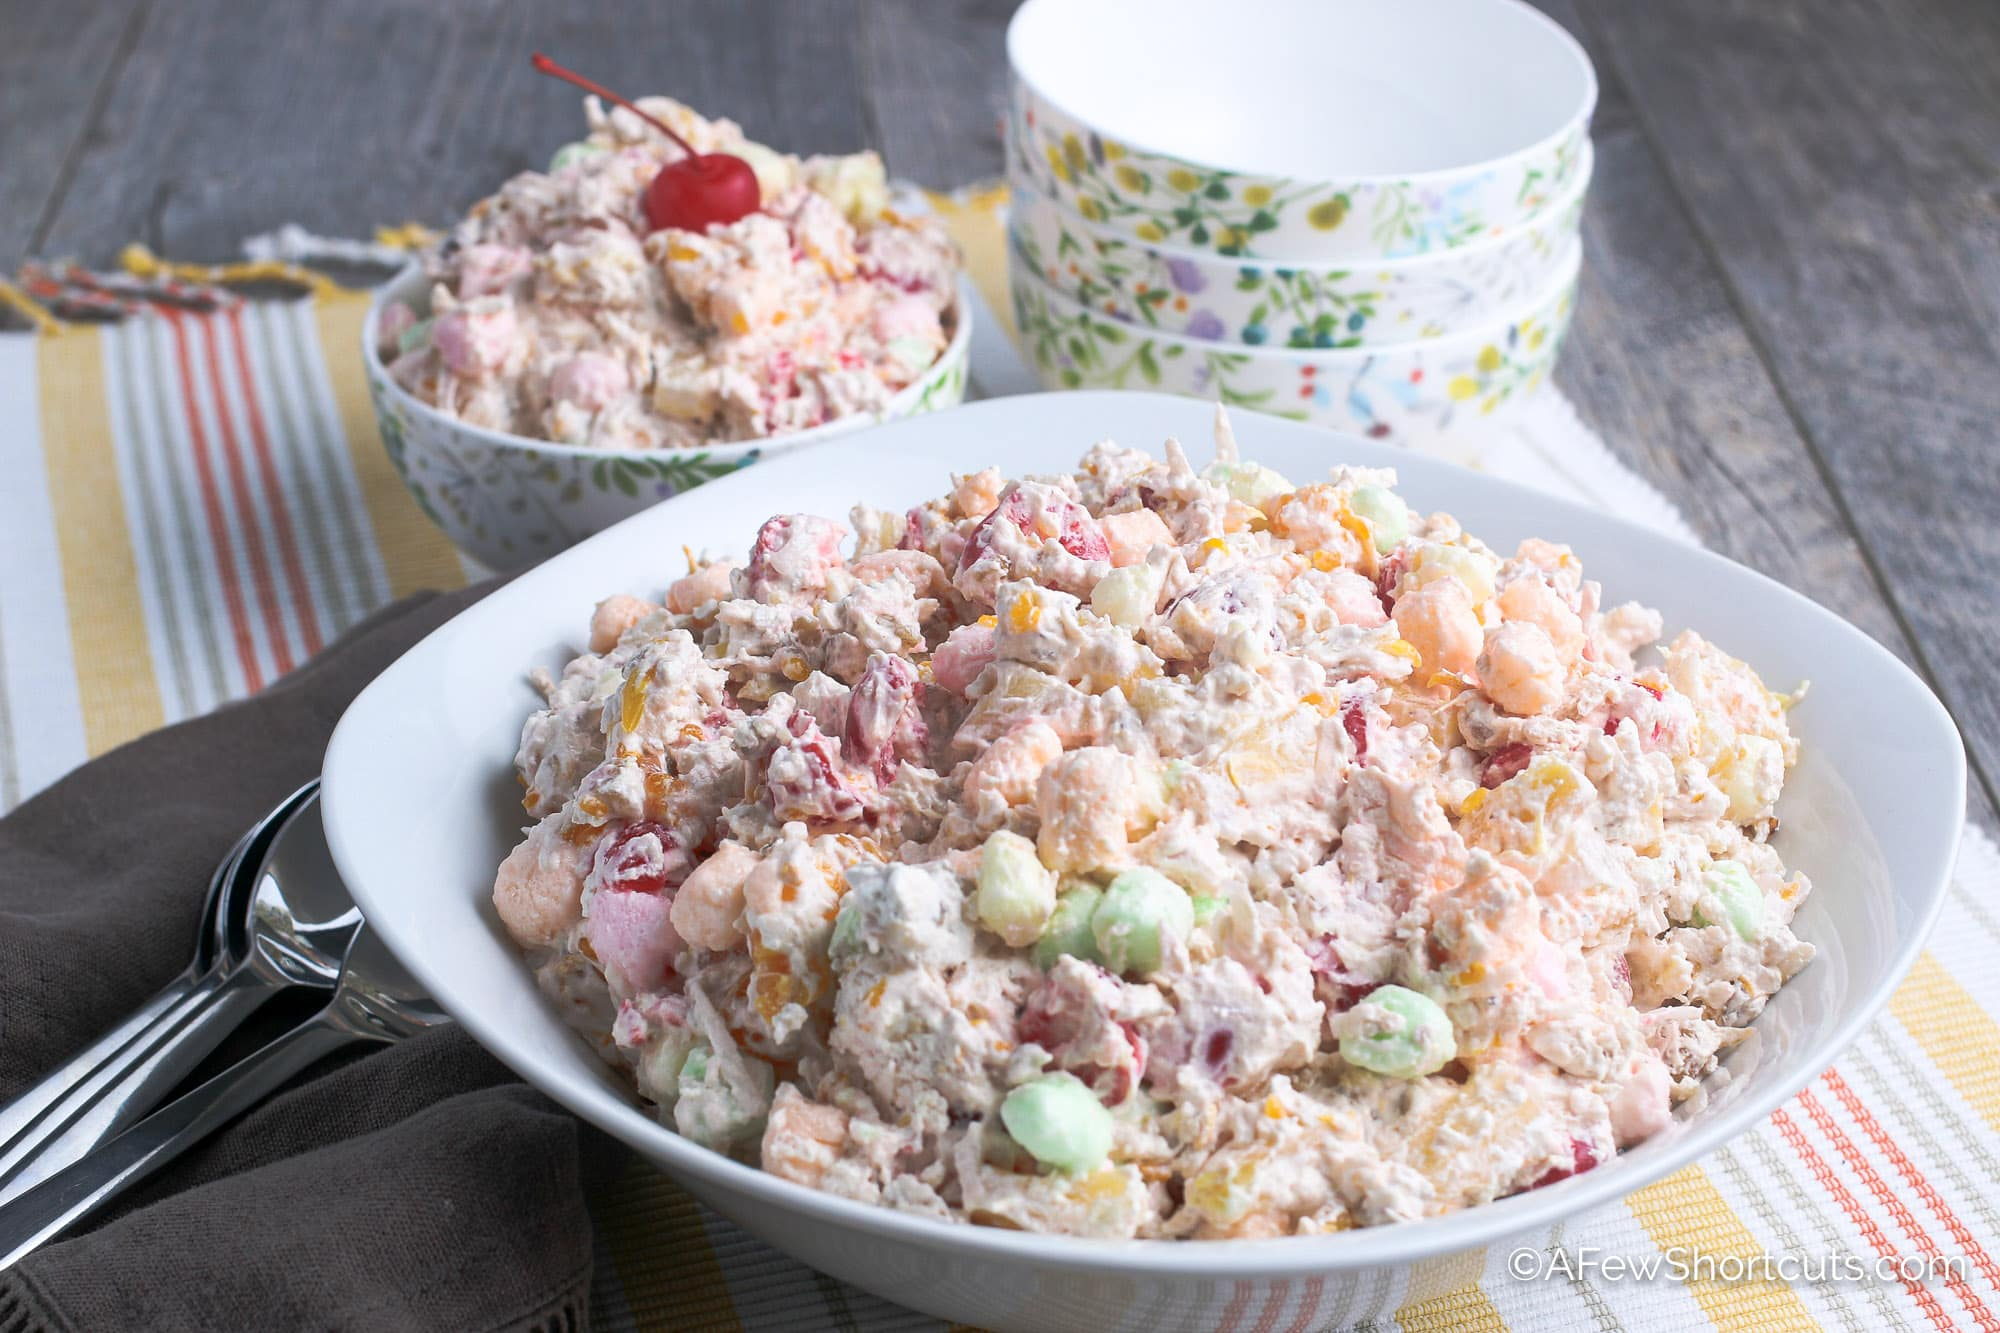 Ambrosia Salad in serving bowl with spoons